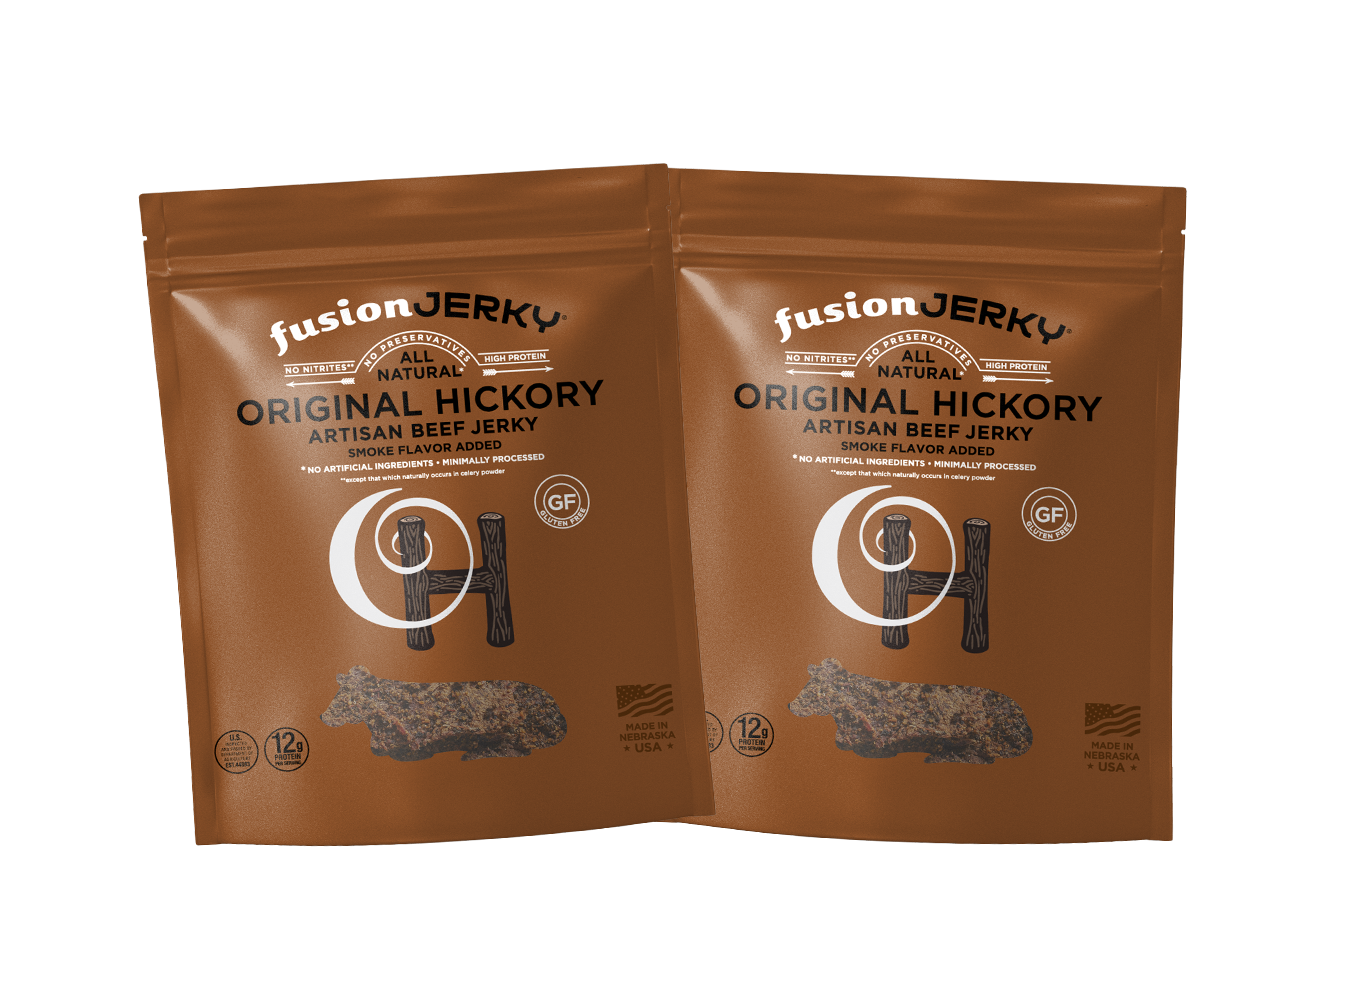 Original Hickory Jerky Trial Pack Two 1 oz Packs - Fusion Jerky